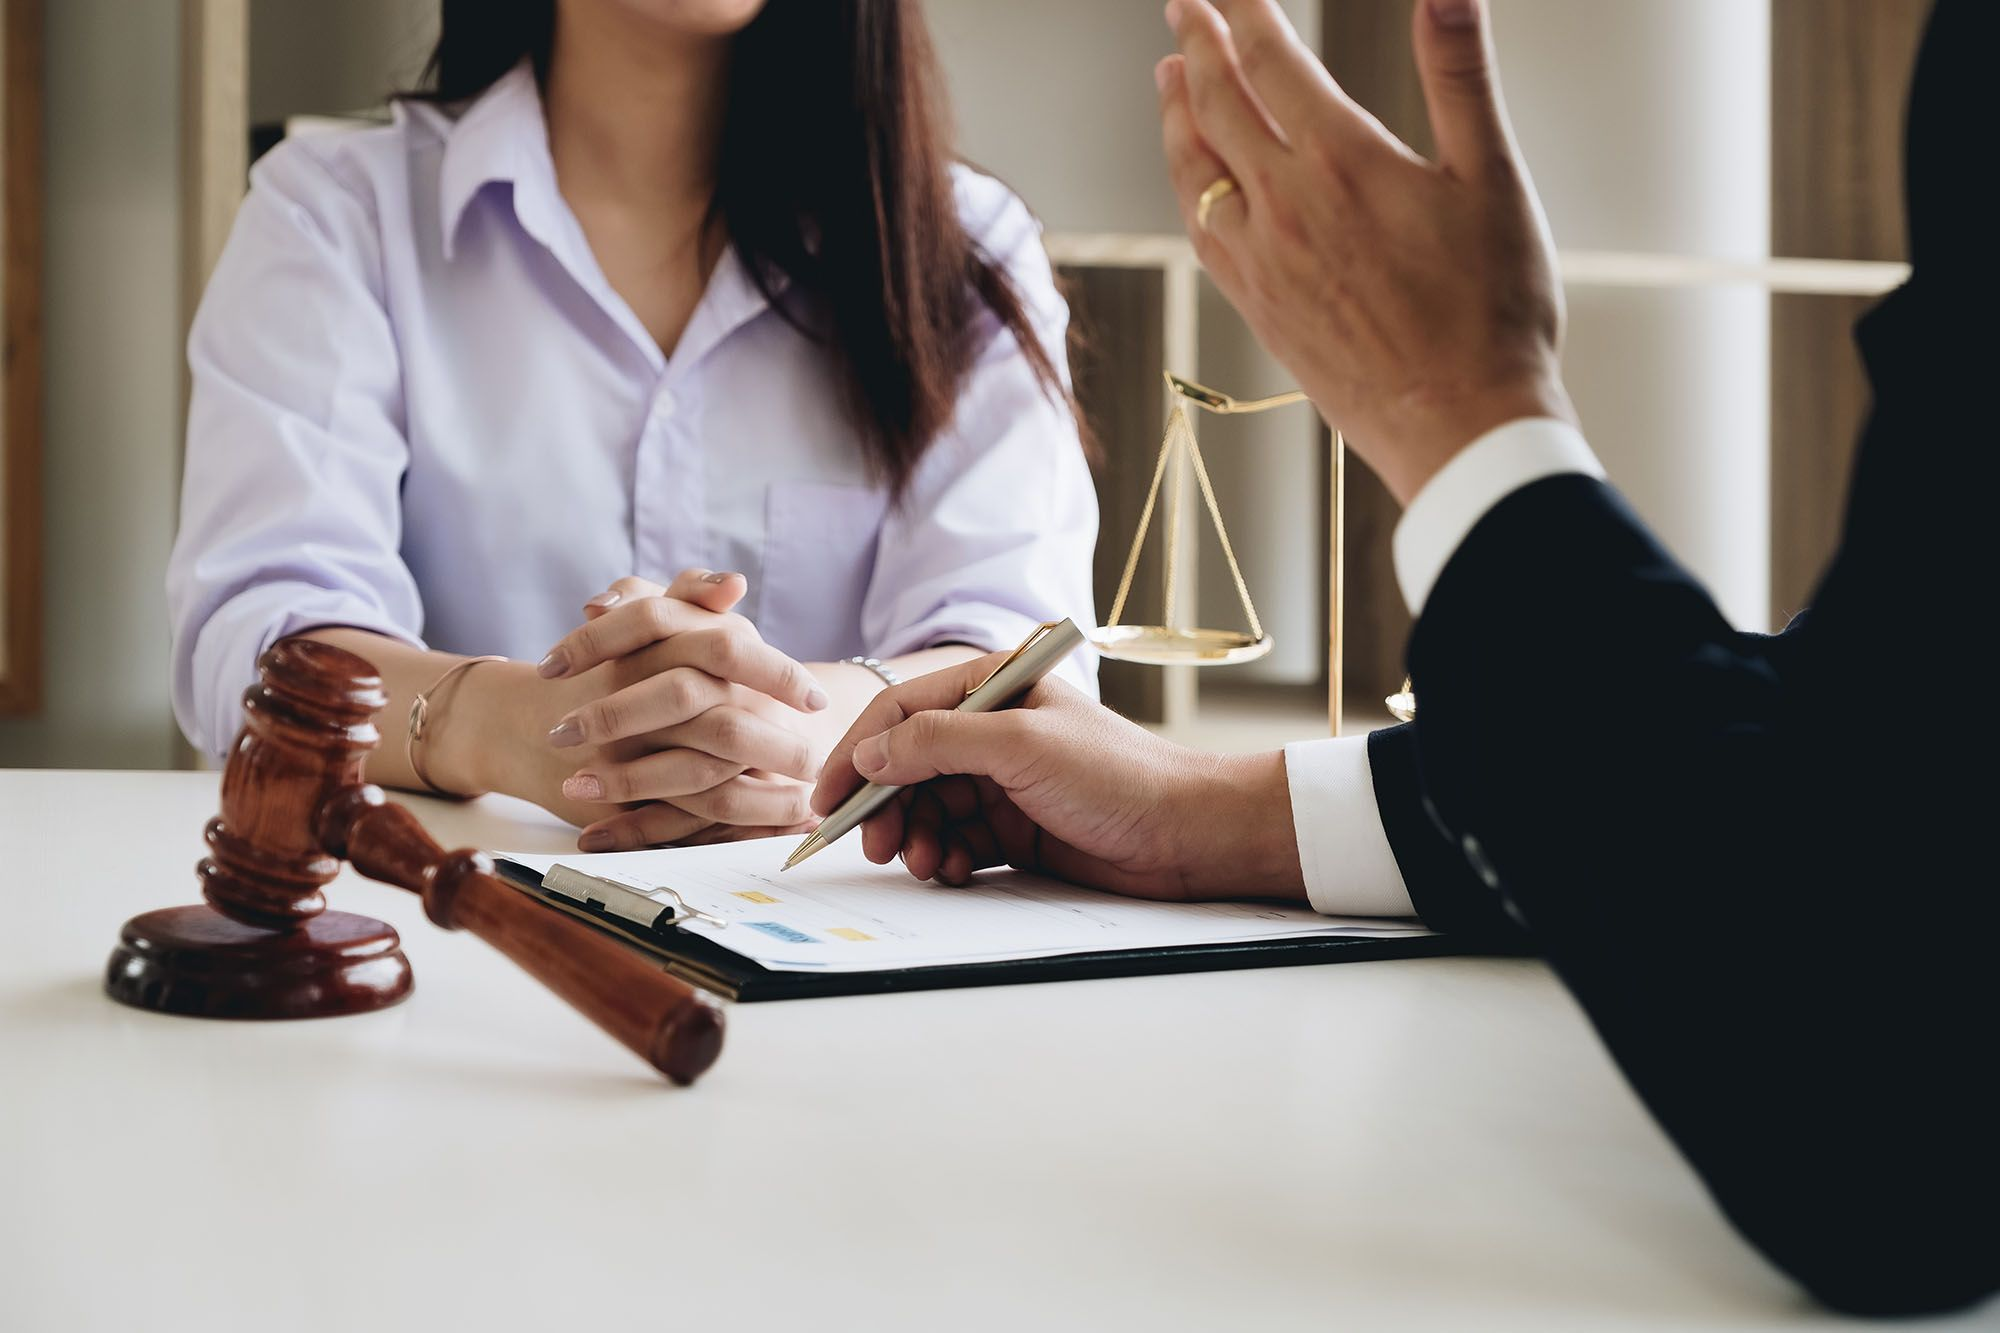 Suffered discrimination at work? Talk to a skilled employment lawyer now!